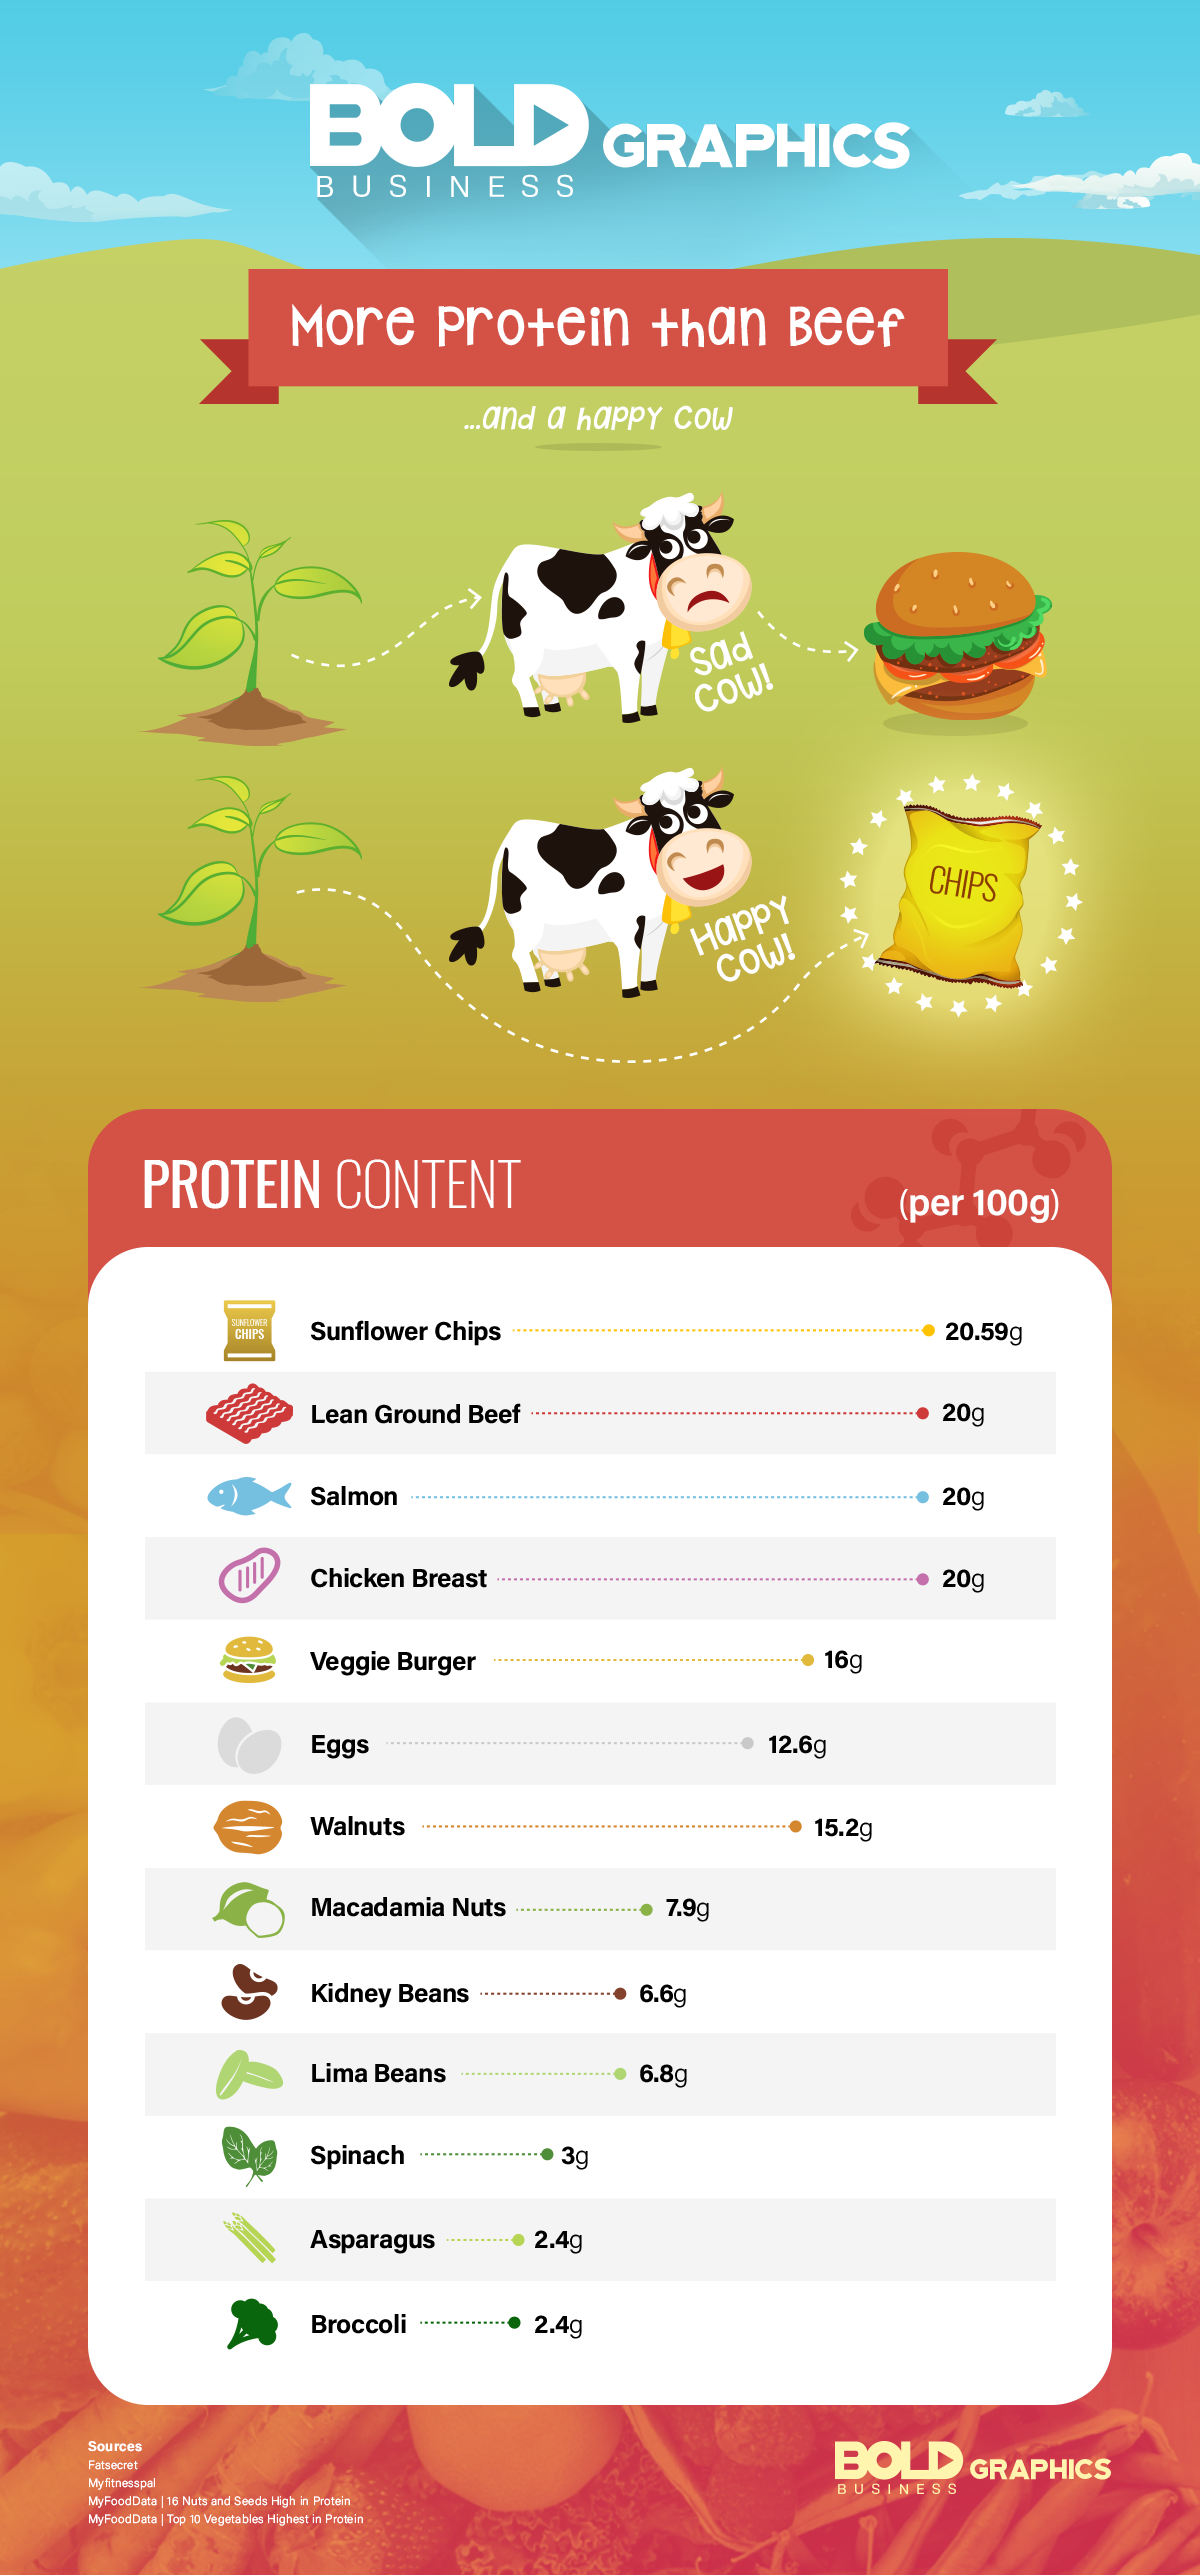 protein sources,protein sources for vegans,protein sources other than meat,protein sources not meat,protein sources for vegetarians,protein sources chart,protein source alternative,protein and source,protein alternative infographic